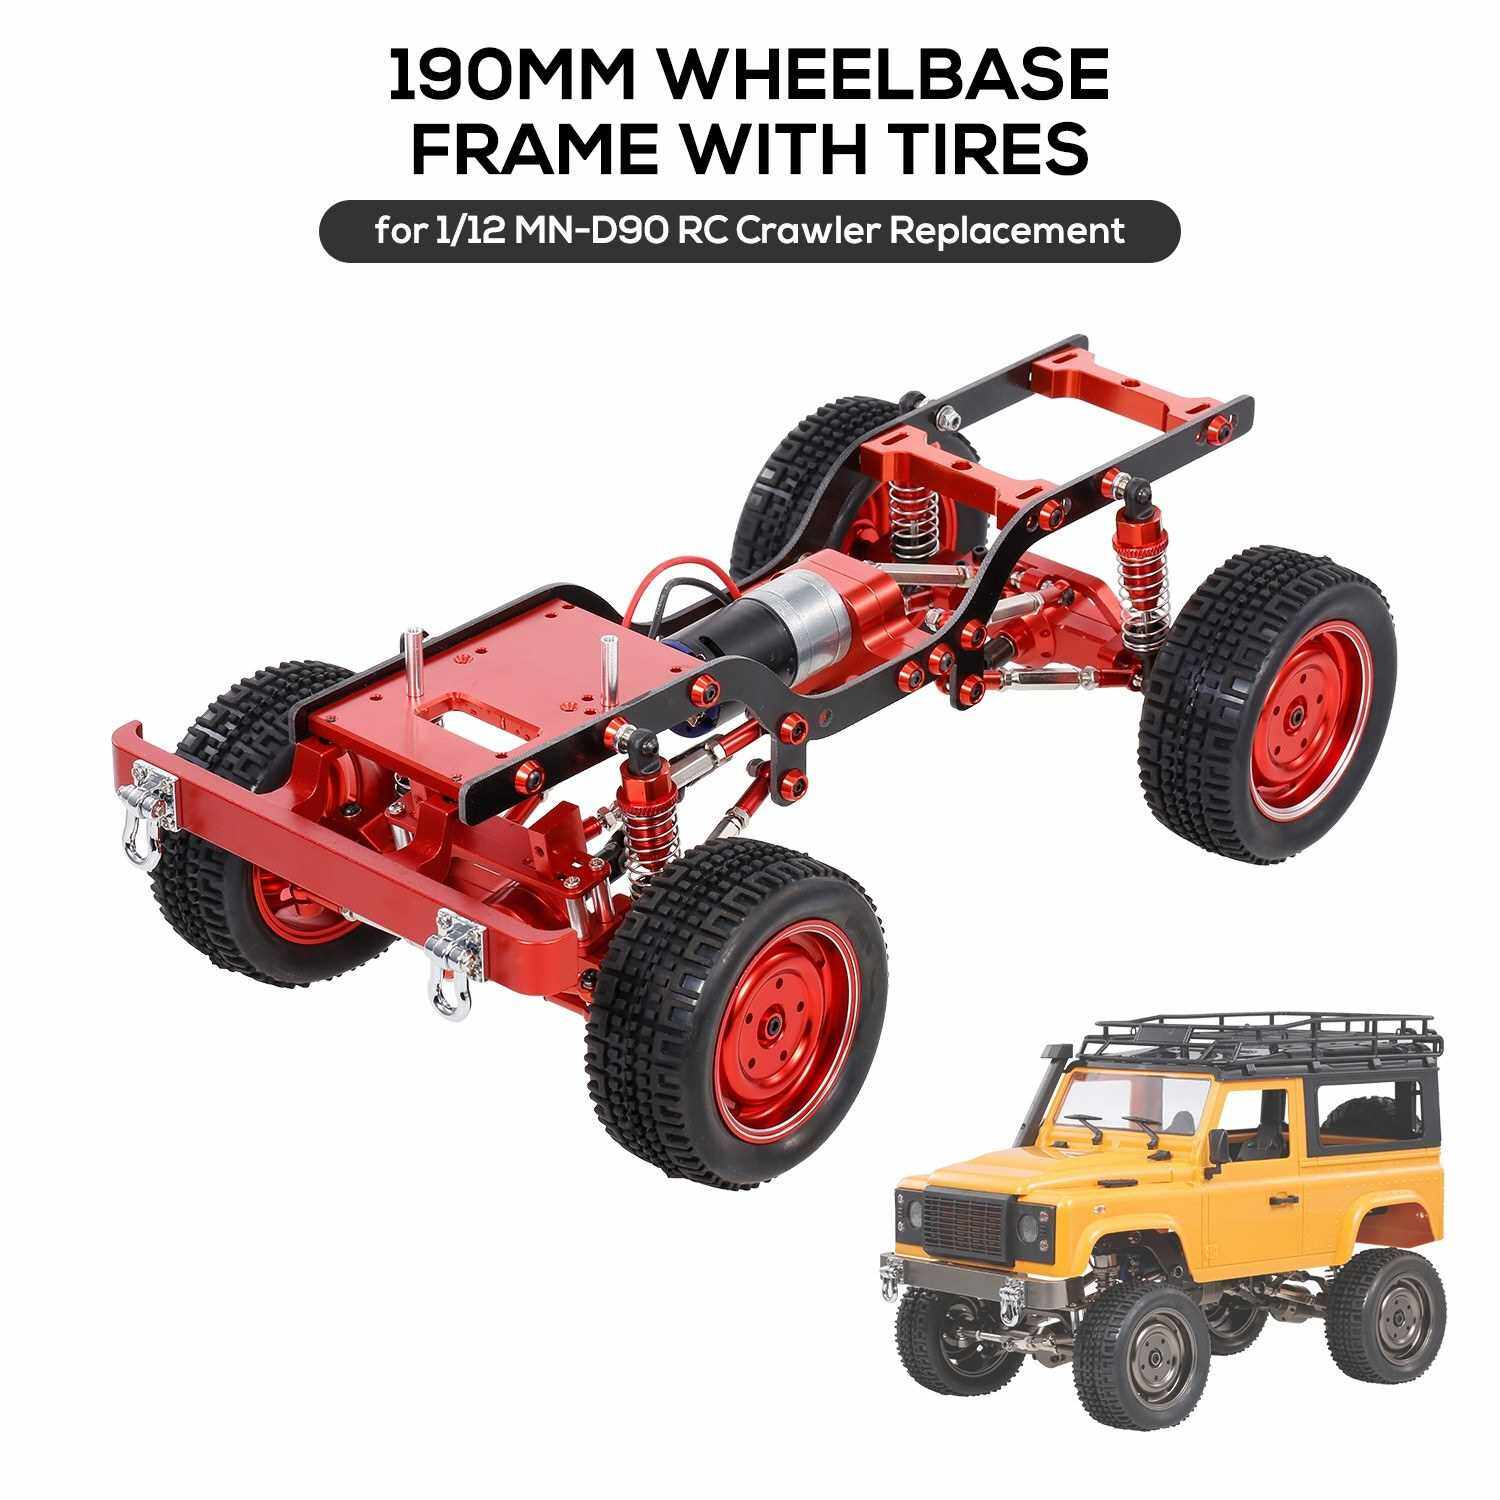 MN-D90 Replacement 190mm Full Metal Wheelbase Chassis Frame with Tires 370 Motor Gearbox for 1/12 RC Crawler Car DIY Parts (Red)